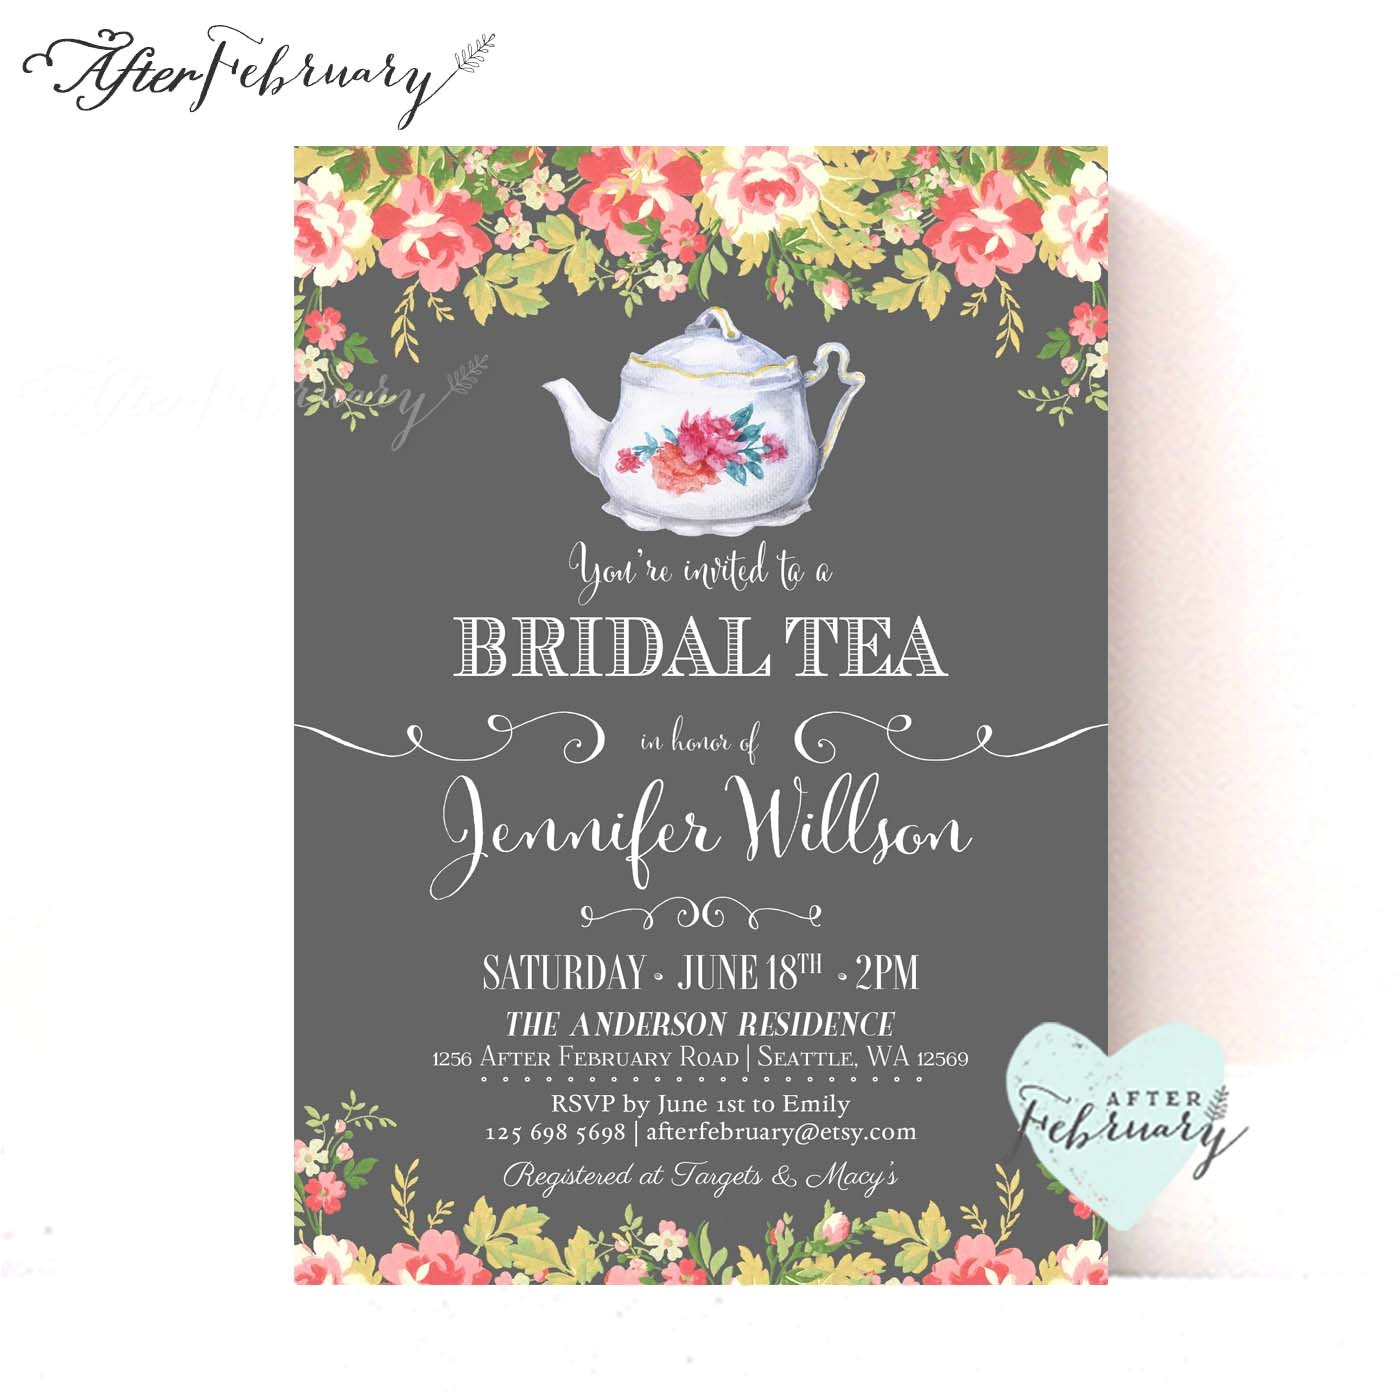 etsy party invitations bridal shower tea party invitations bridal shower tea party